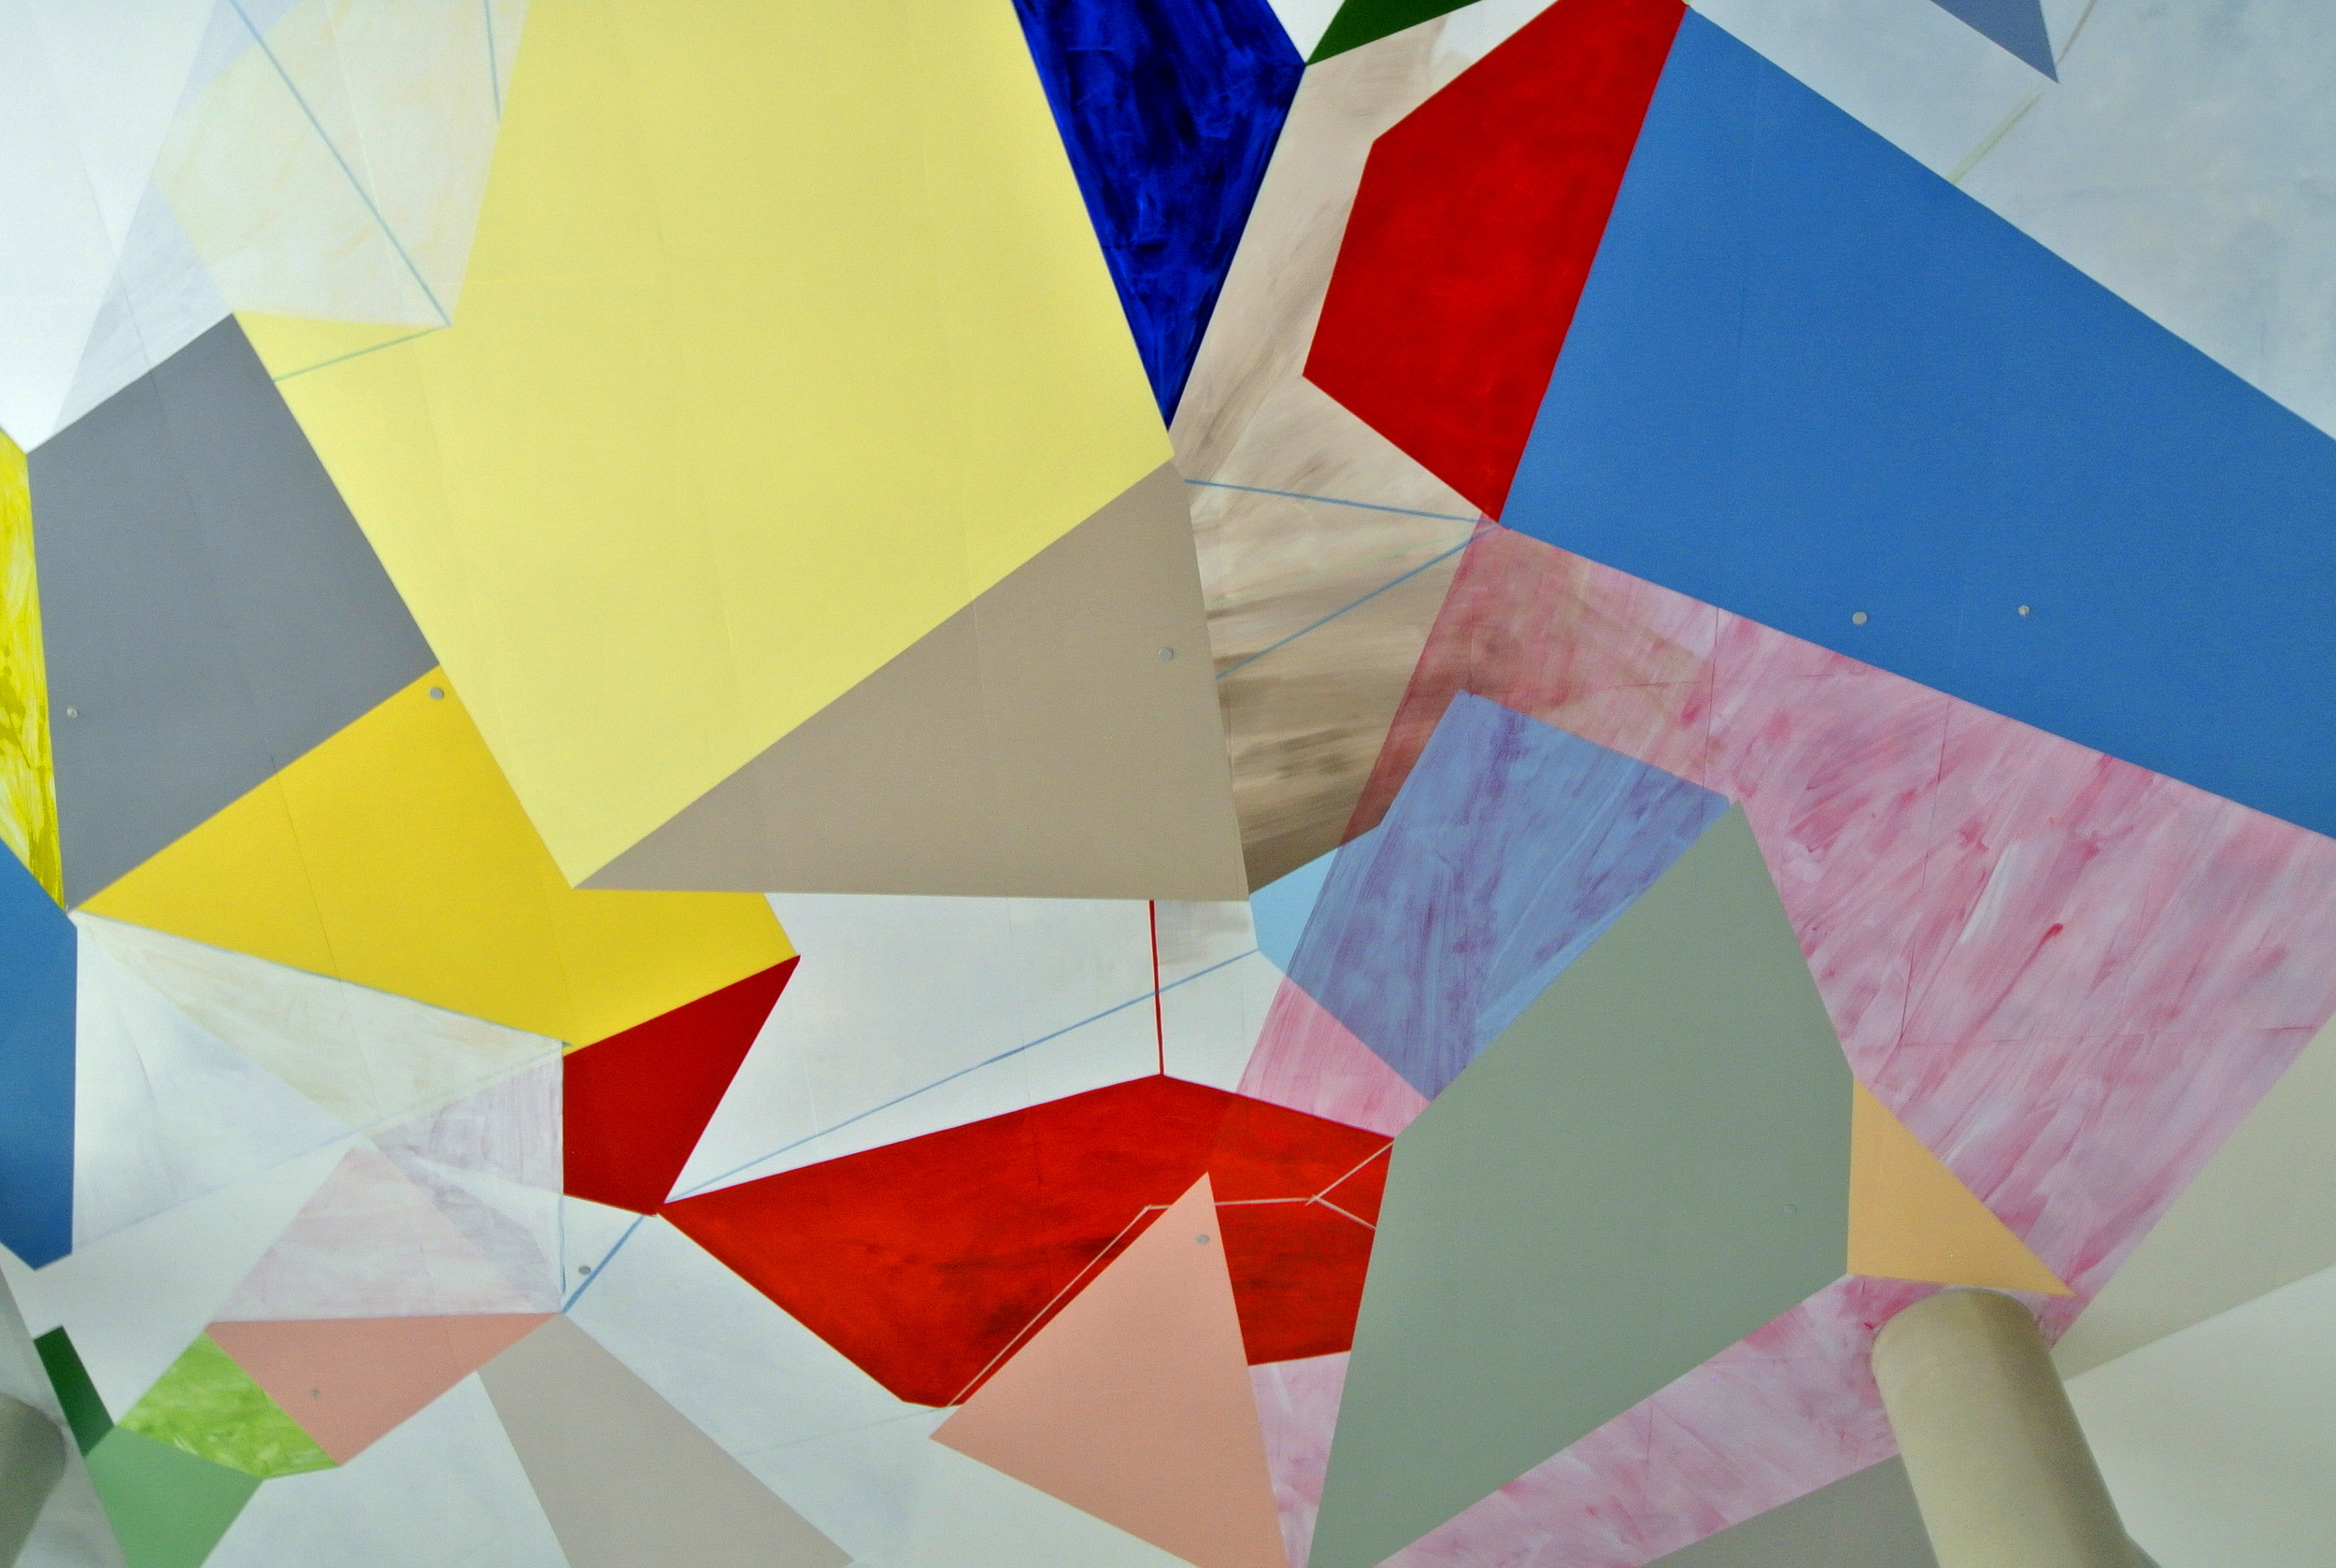 Collision and Improvisation (Ceiling)  2012  Gemma Smith  Acrylic on concrete Source: Author